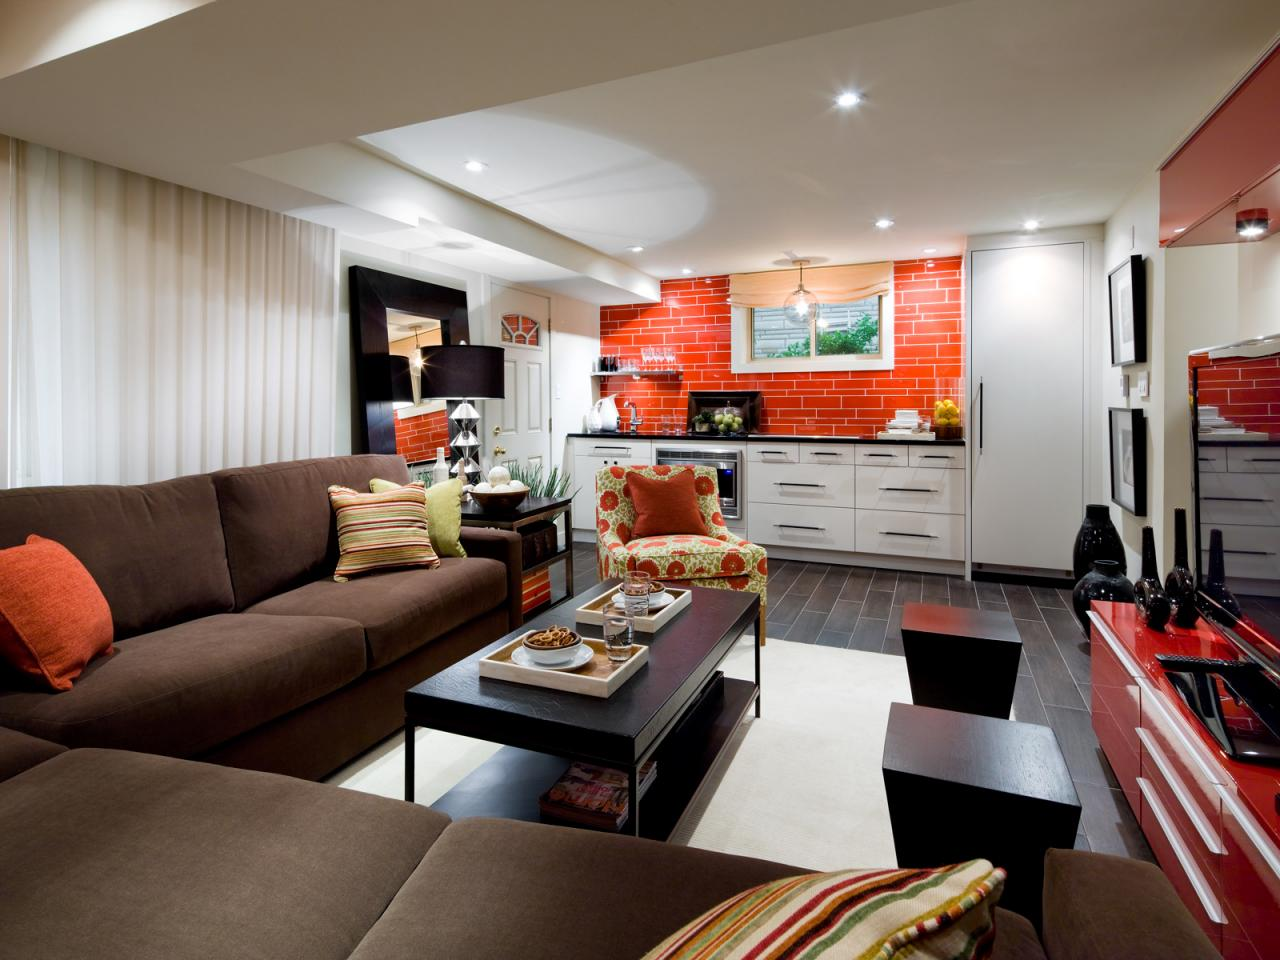 Home Basement Designs Interior Awesome Basement Design And Layout  Hgtv Inspiration Design